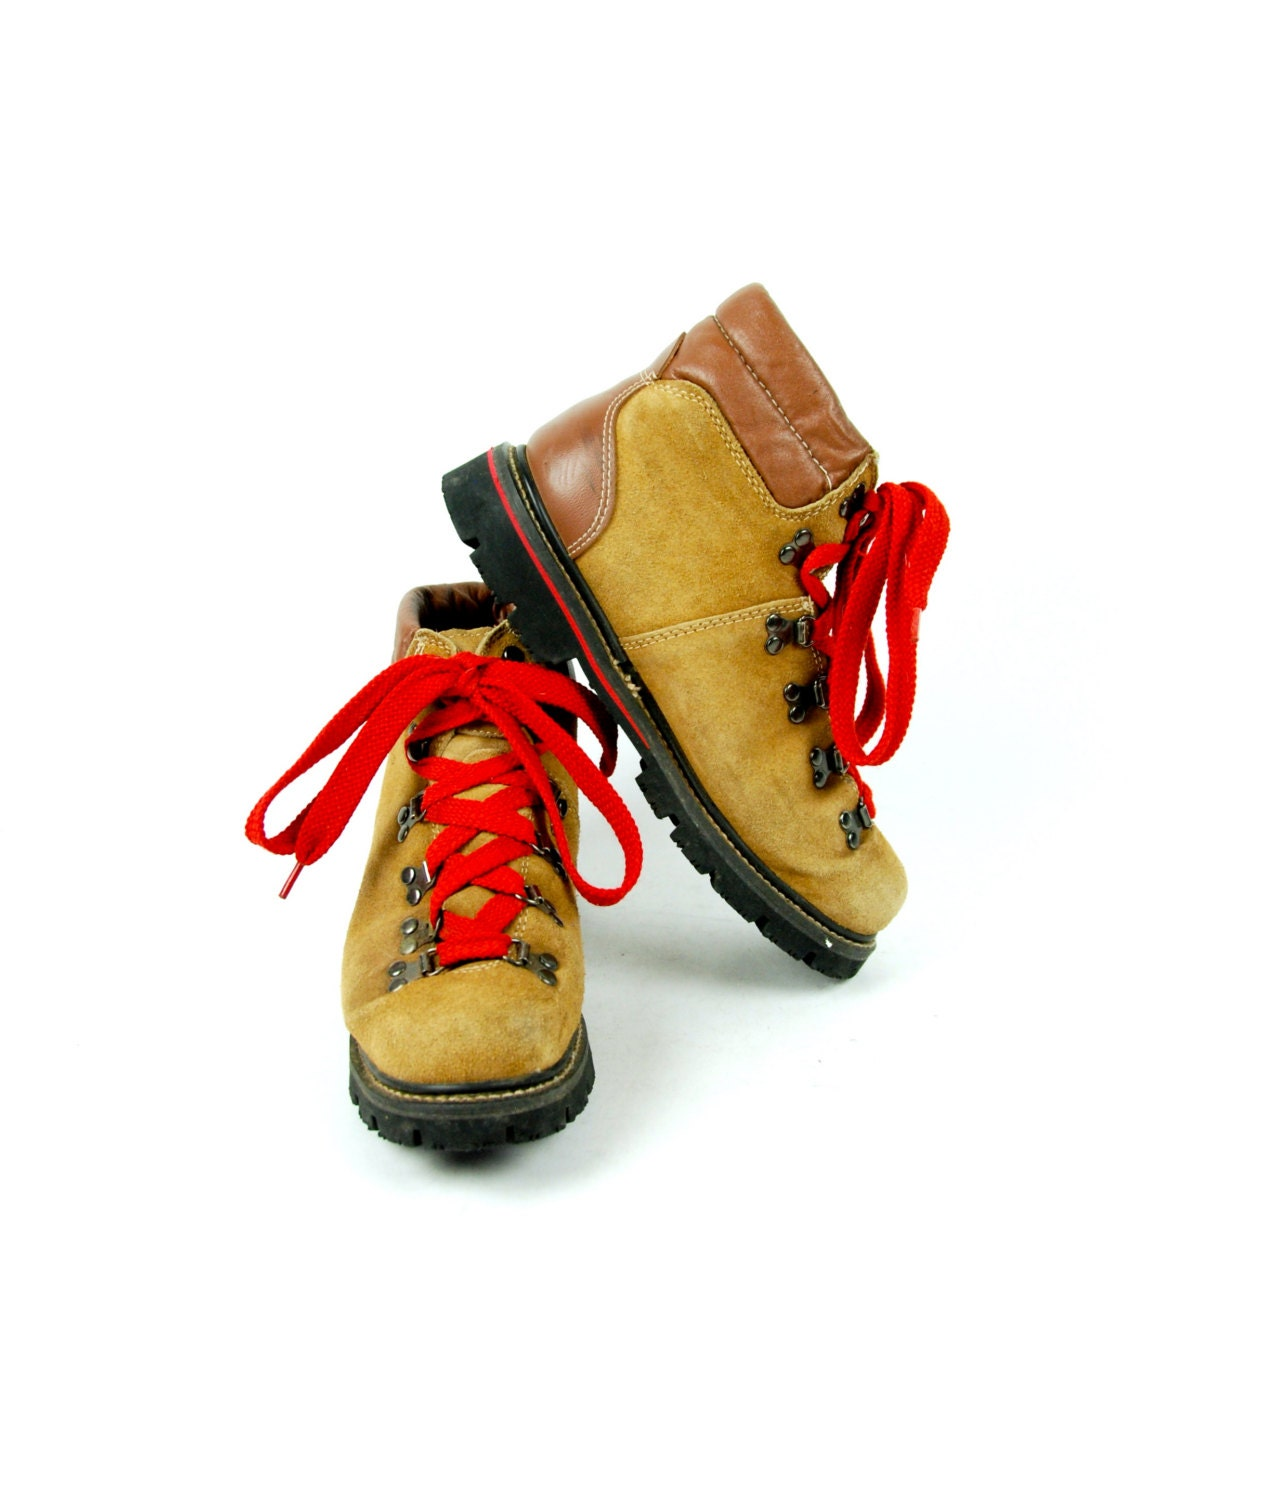 ab03227f9bc Vintage Suede Hiking Boots by Ozark Trail, Men's Size 8